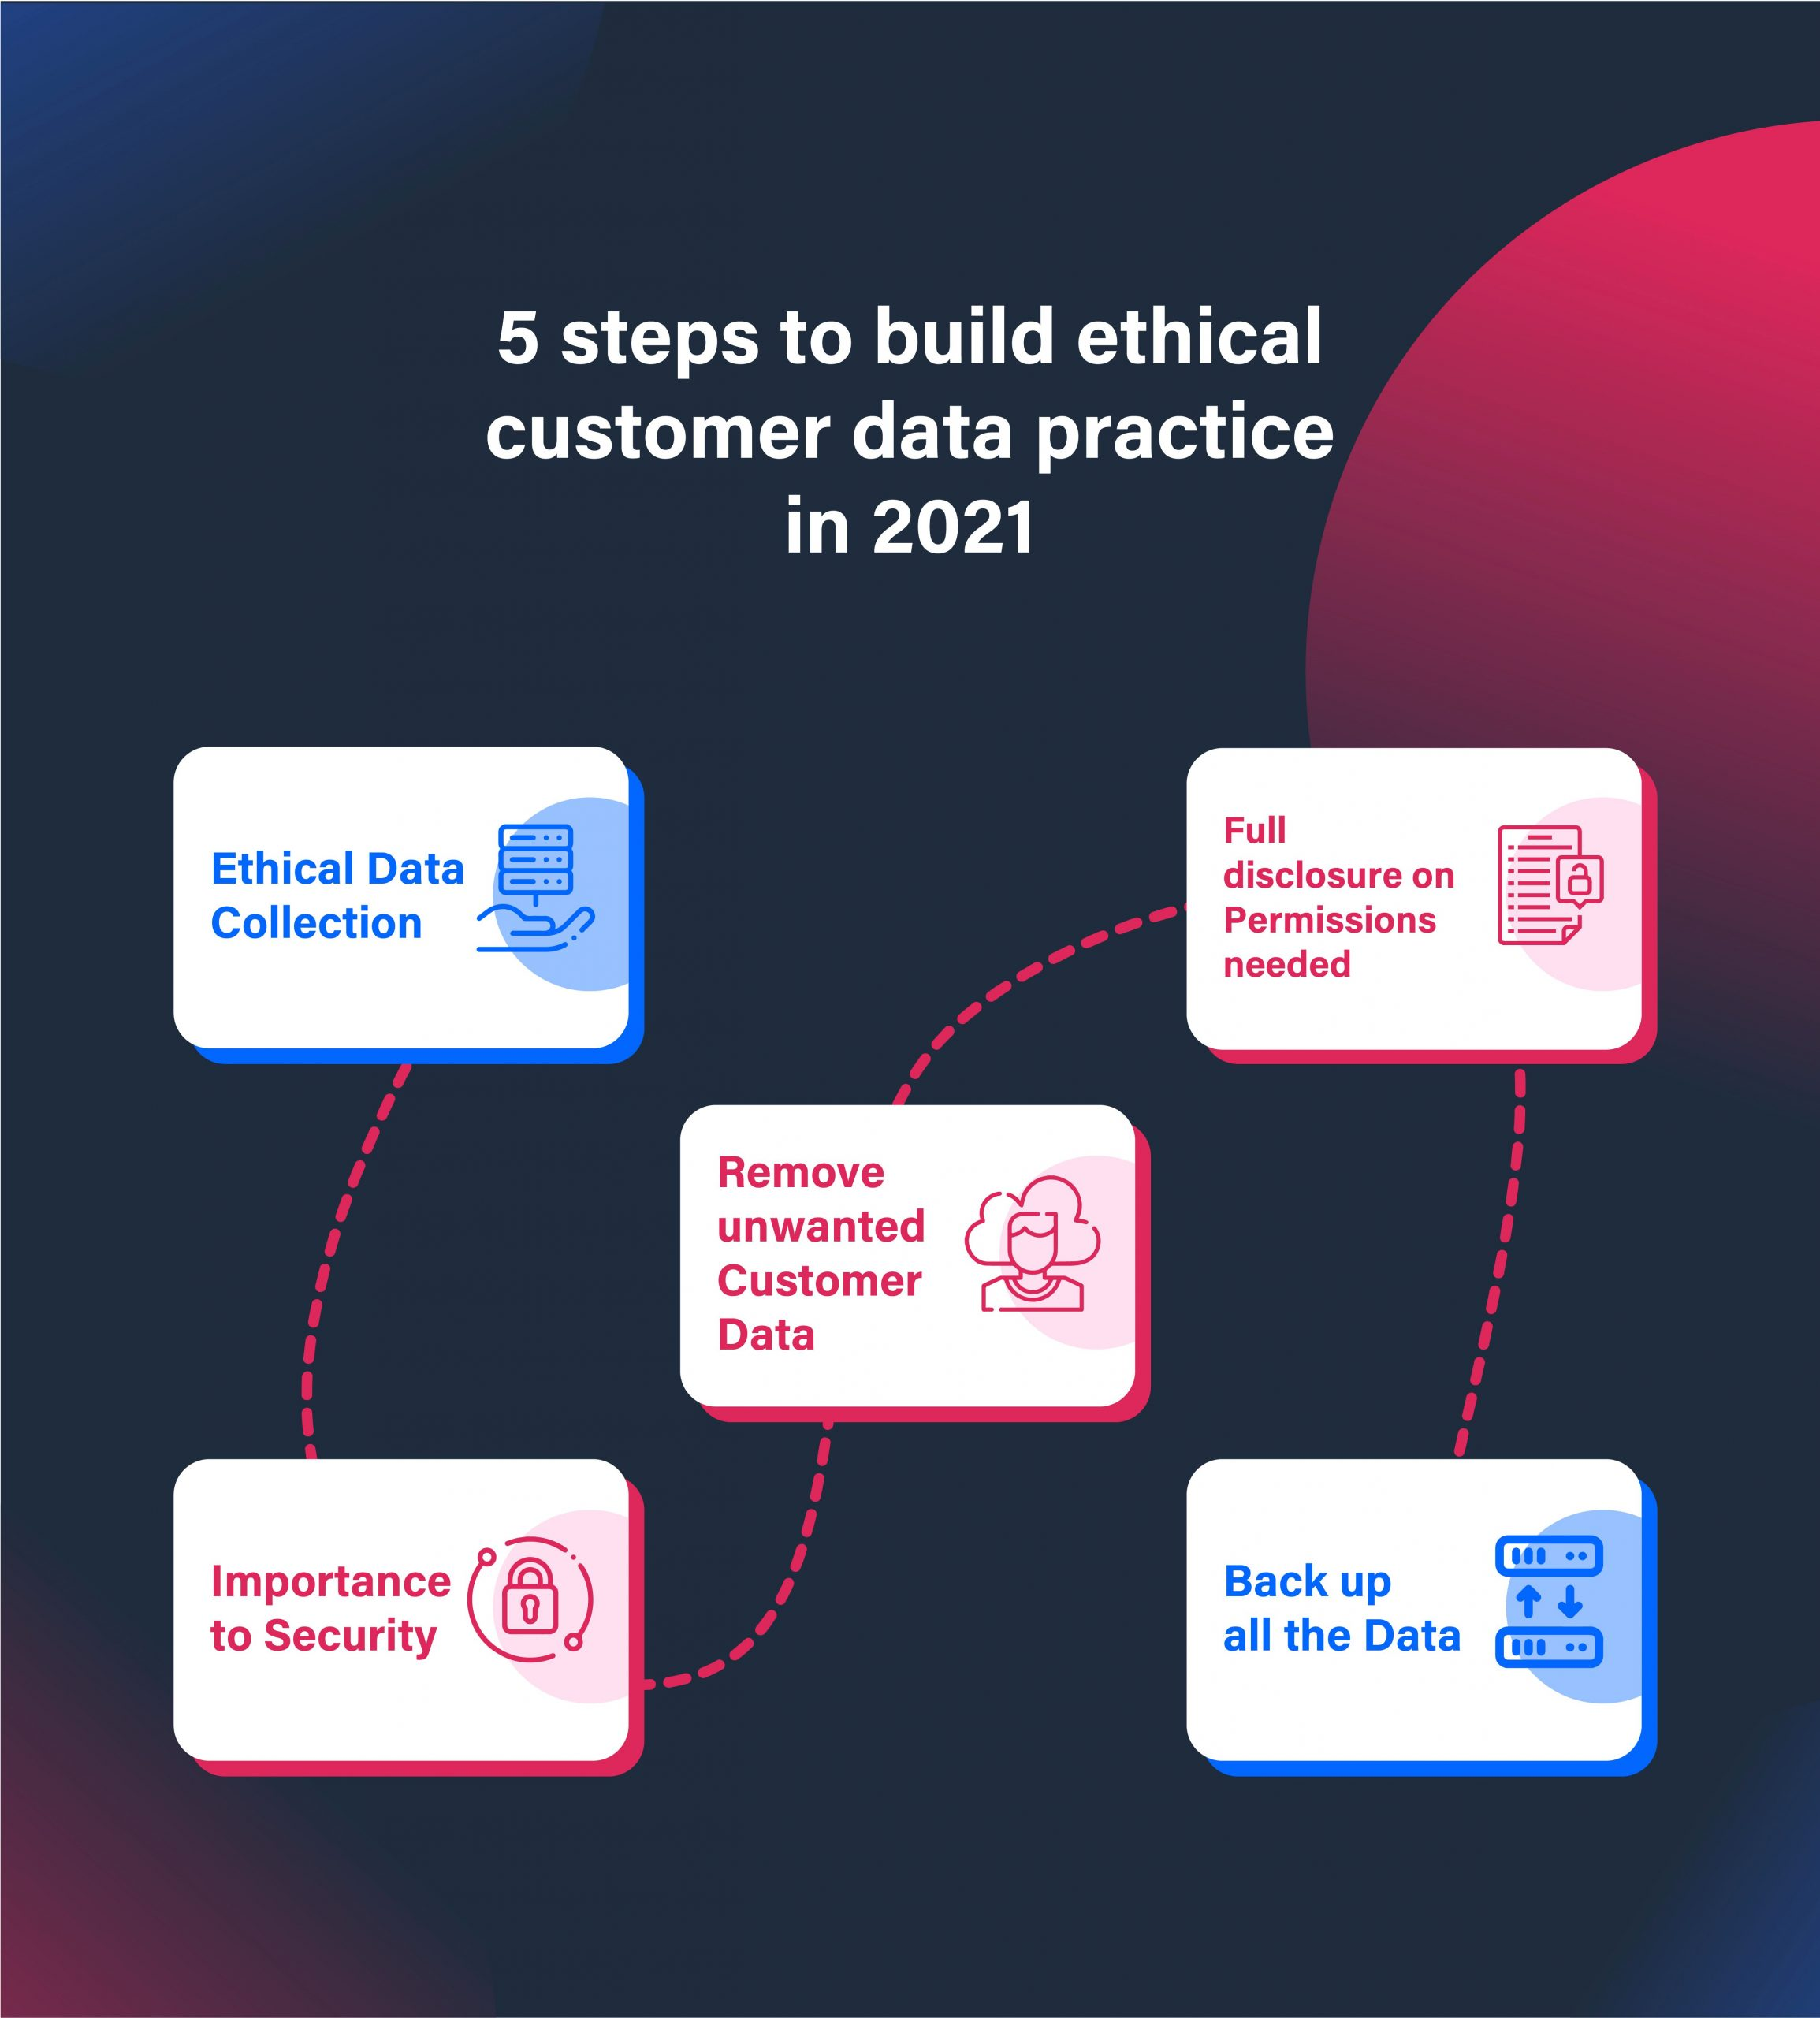 5%20steps%20to%20build%20ethical%20customer%20data%20practice%20in%202021